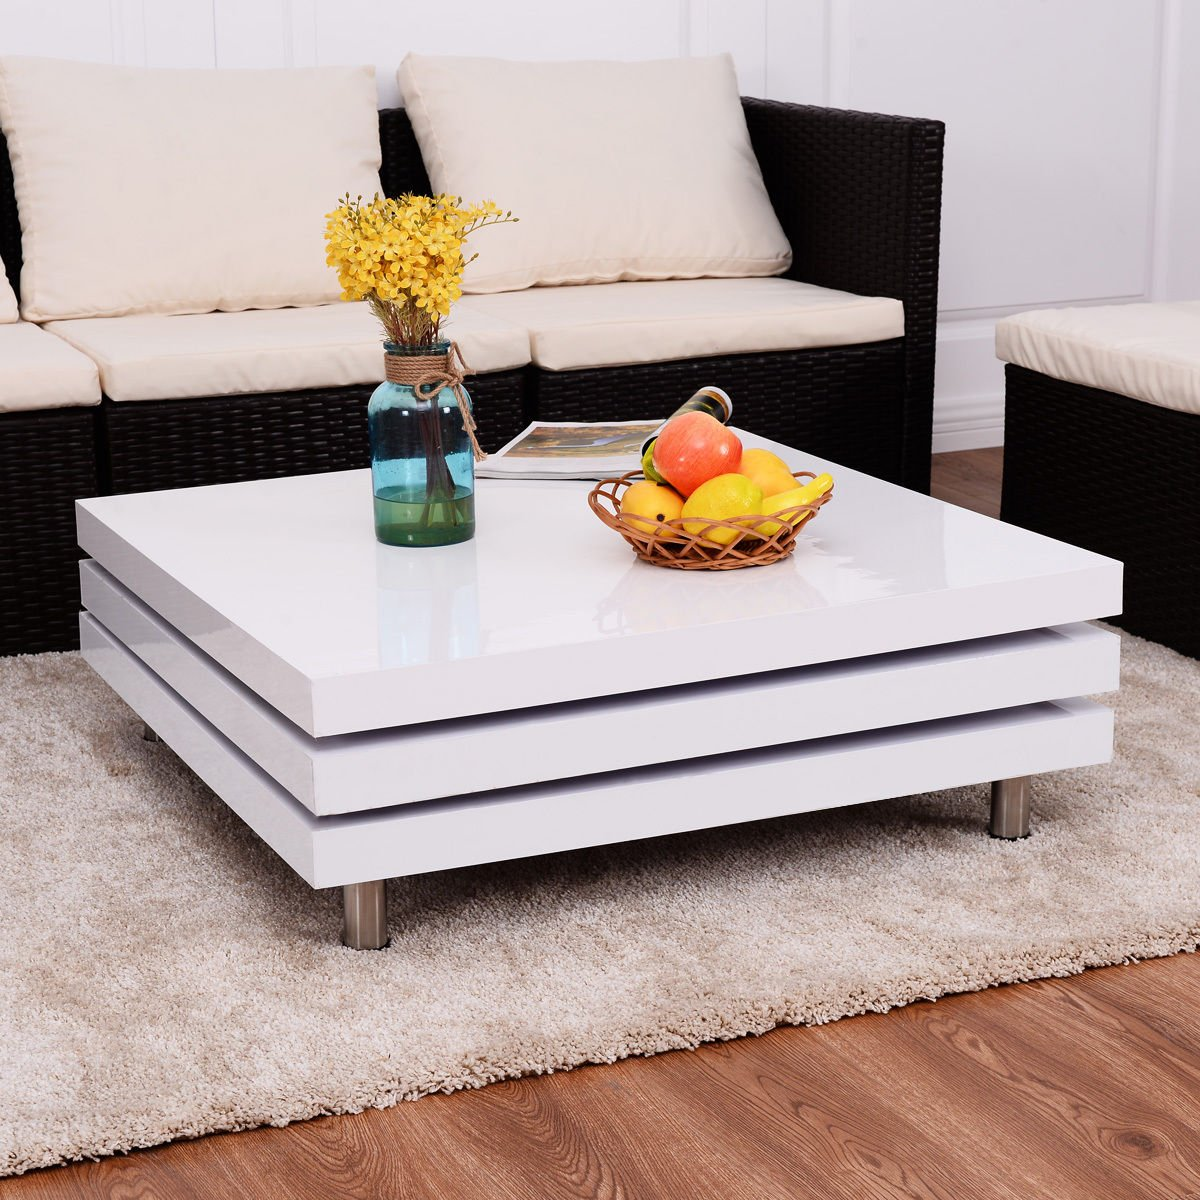 New MTN-G Square Rotating Coffee Table w/3 Layers 360 Degree Swivel Living Room Furniture